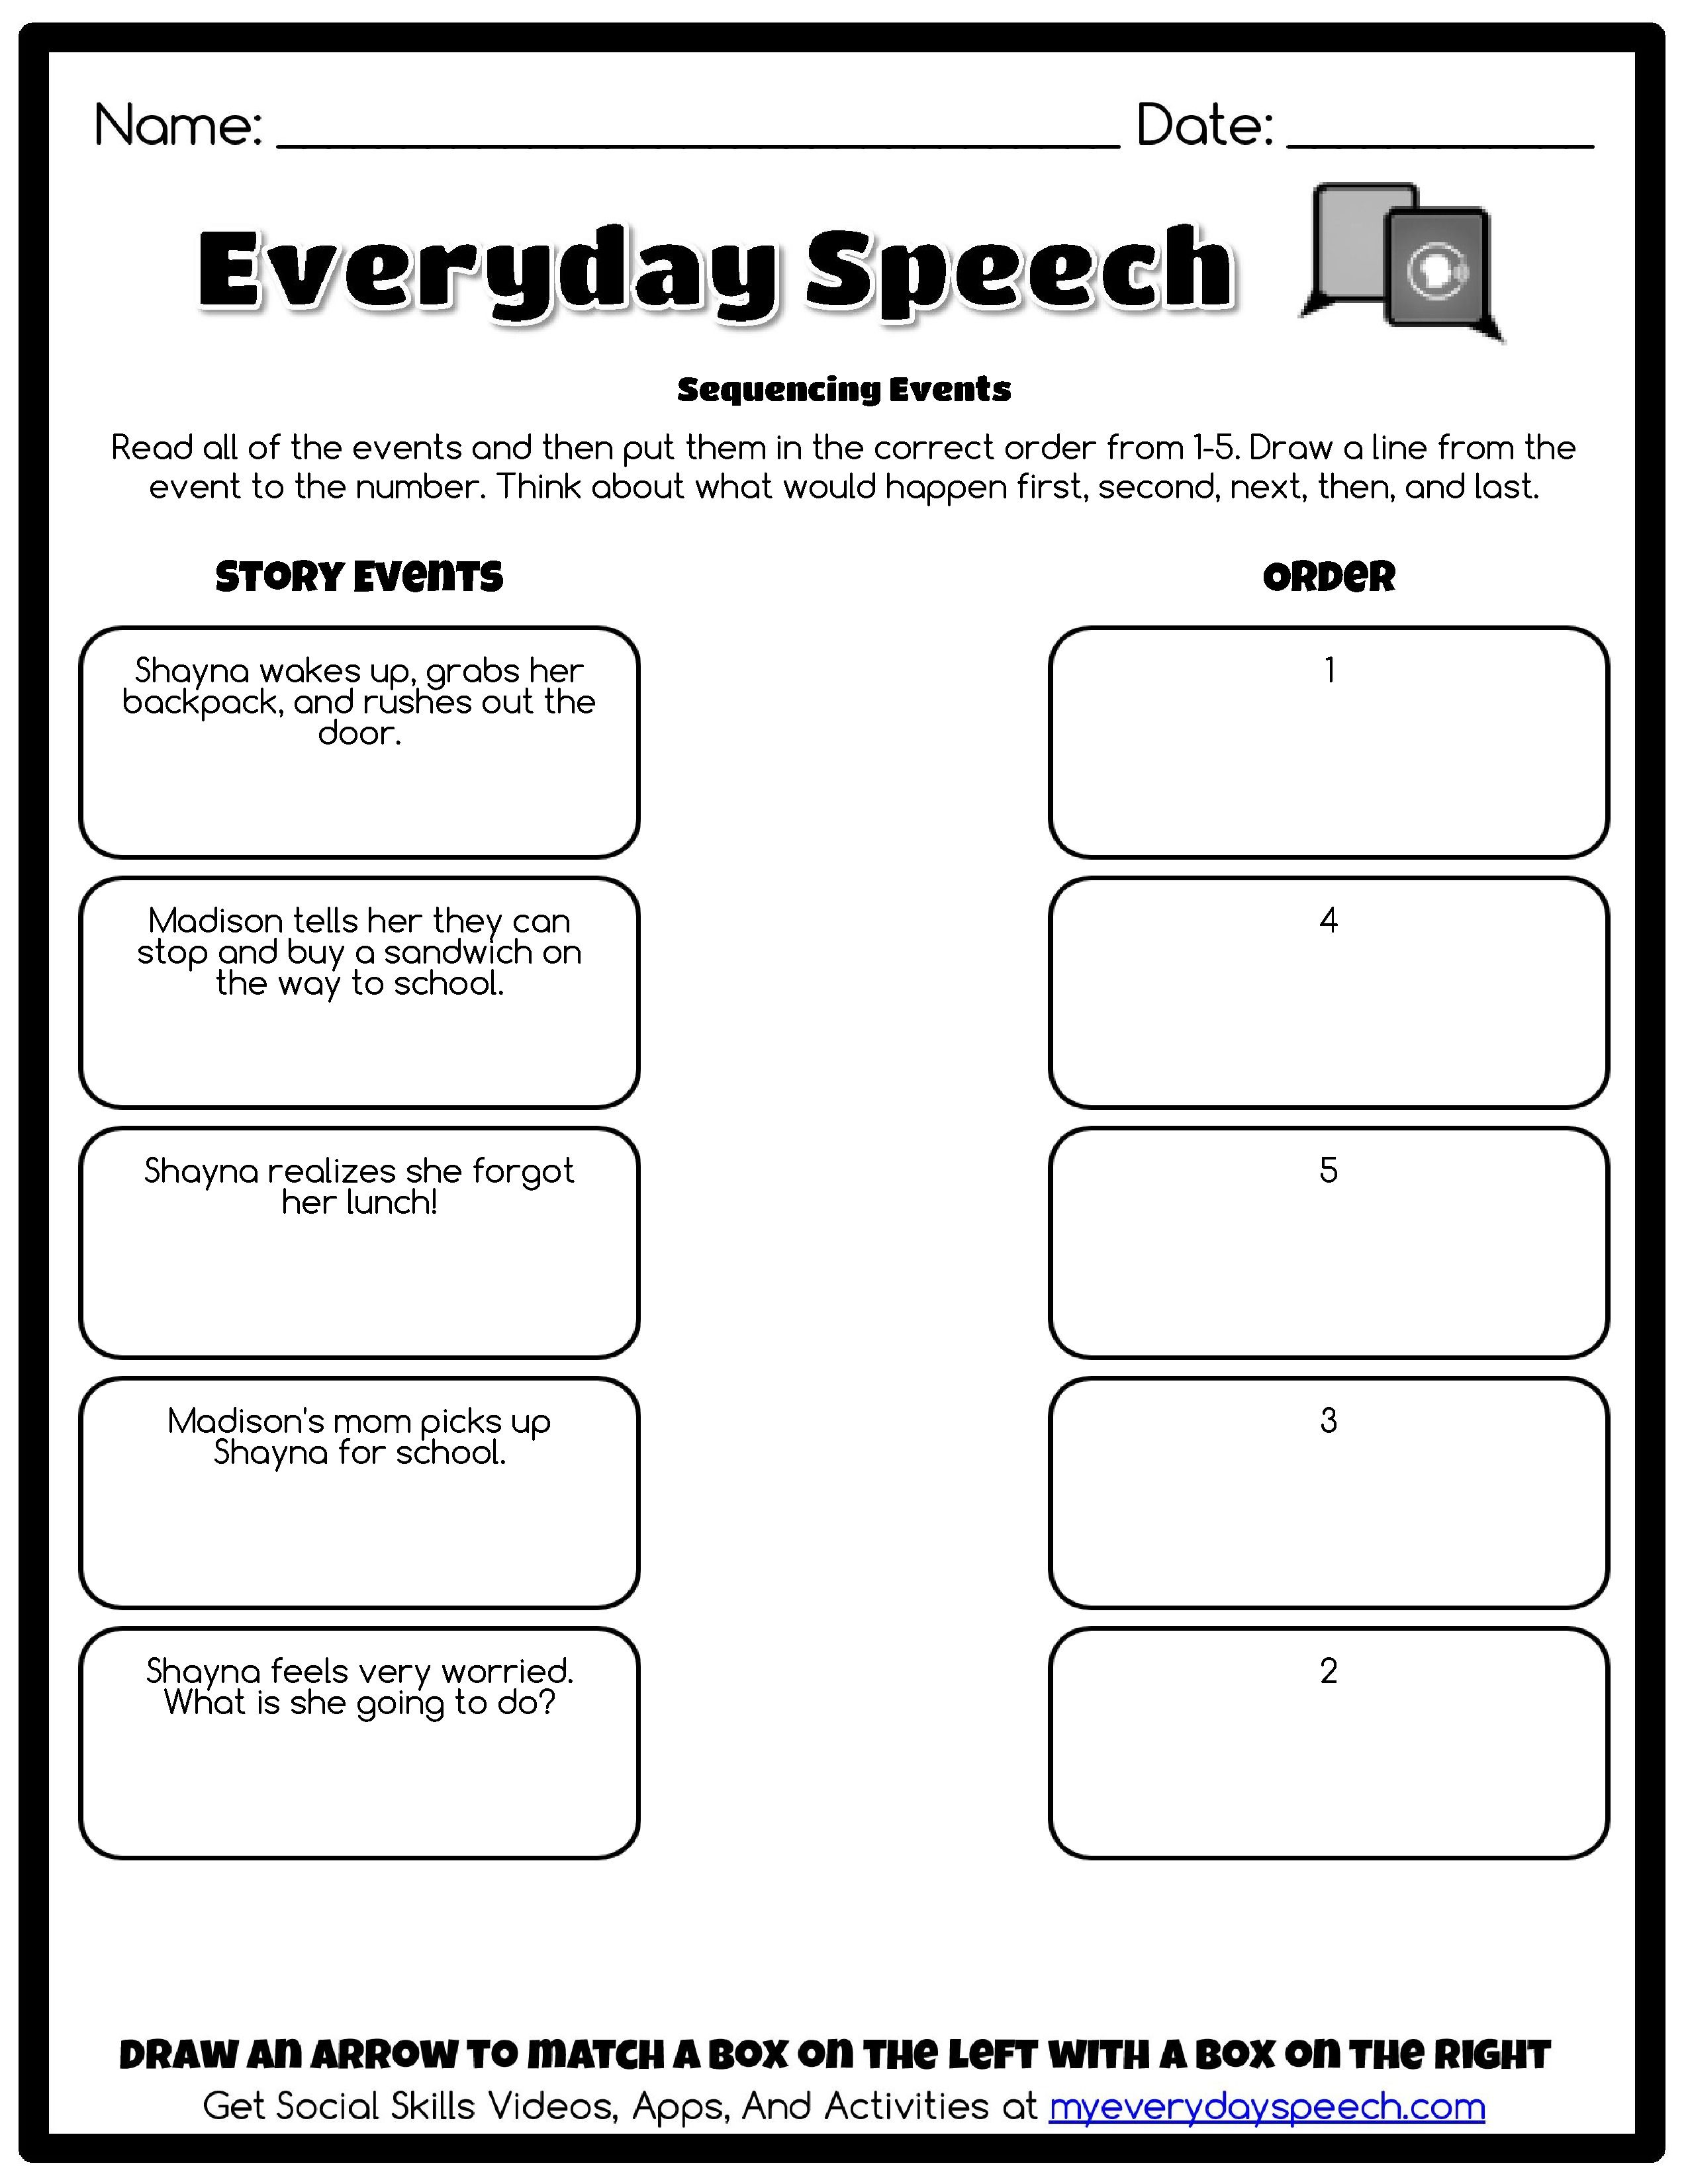 Sequencing Events Everyday Speech Perspective Taking Social Skills Social Skills Activities